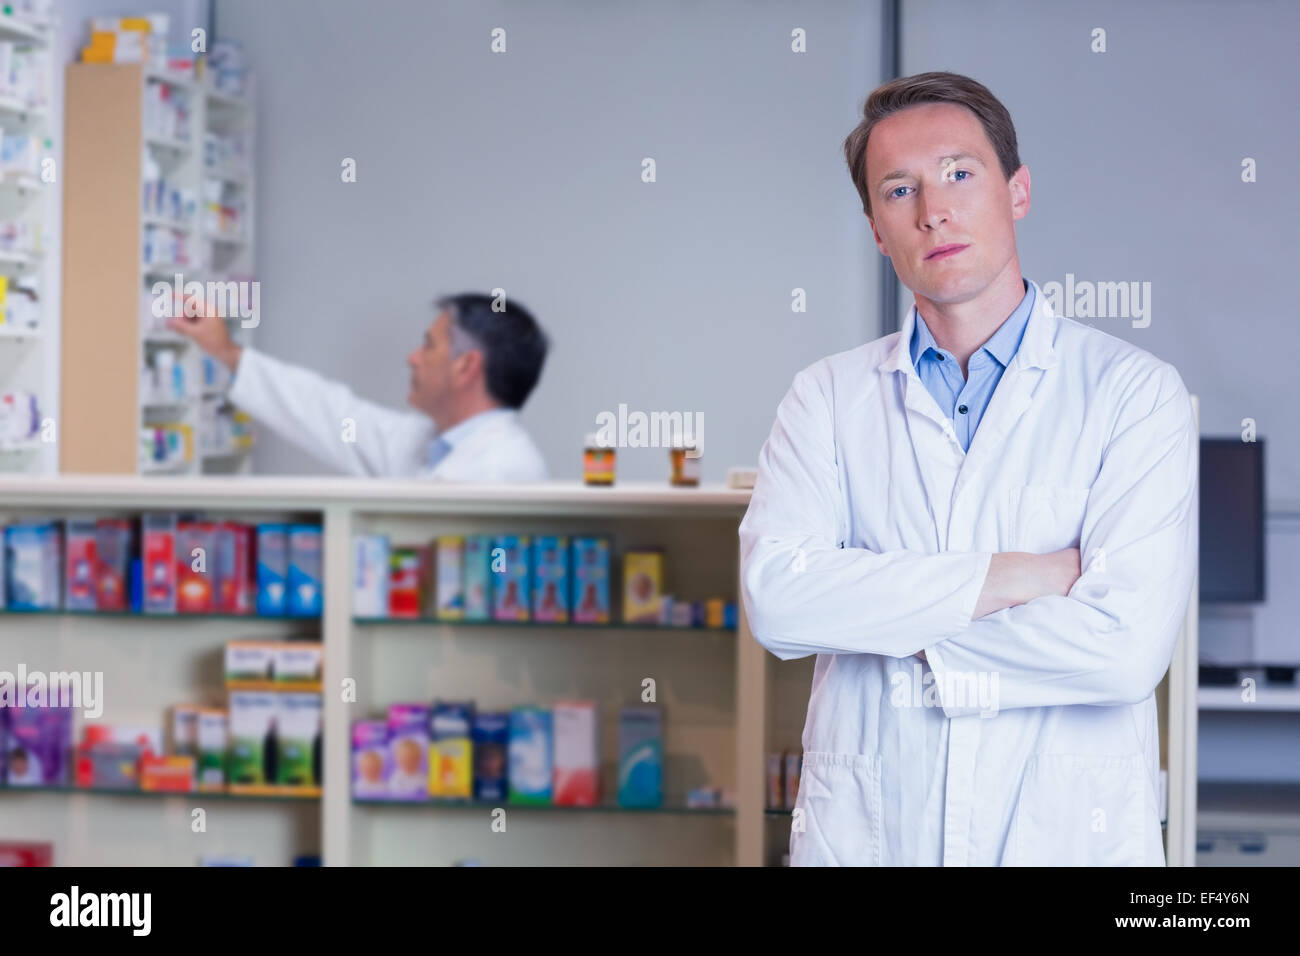 Unsmiling pharmacist standing with arms crossed - Stock Image